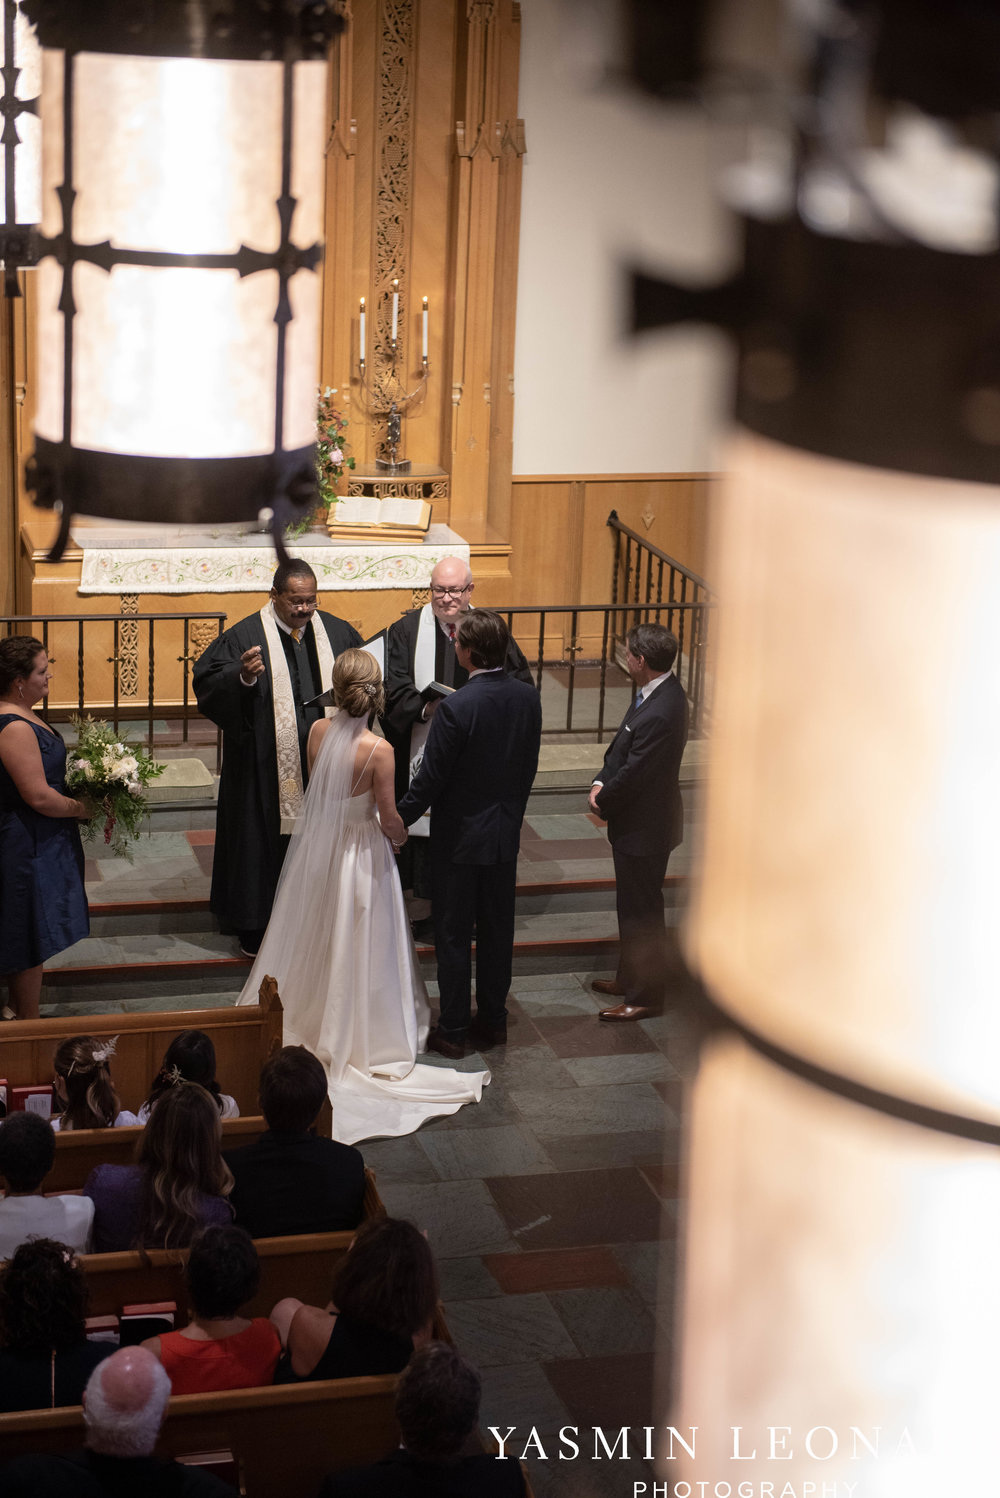 Wesley Memorial United Methodist Church - EmeryWood - High Point Weddings - High Point Wedding Photographer - NC Wedding Photographer - Yasmin Leonard Photography-25.jpg